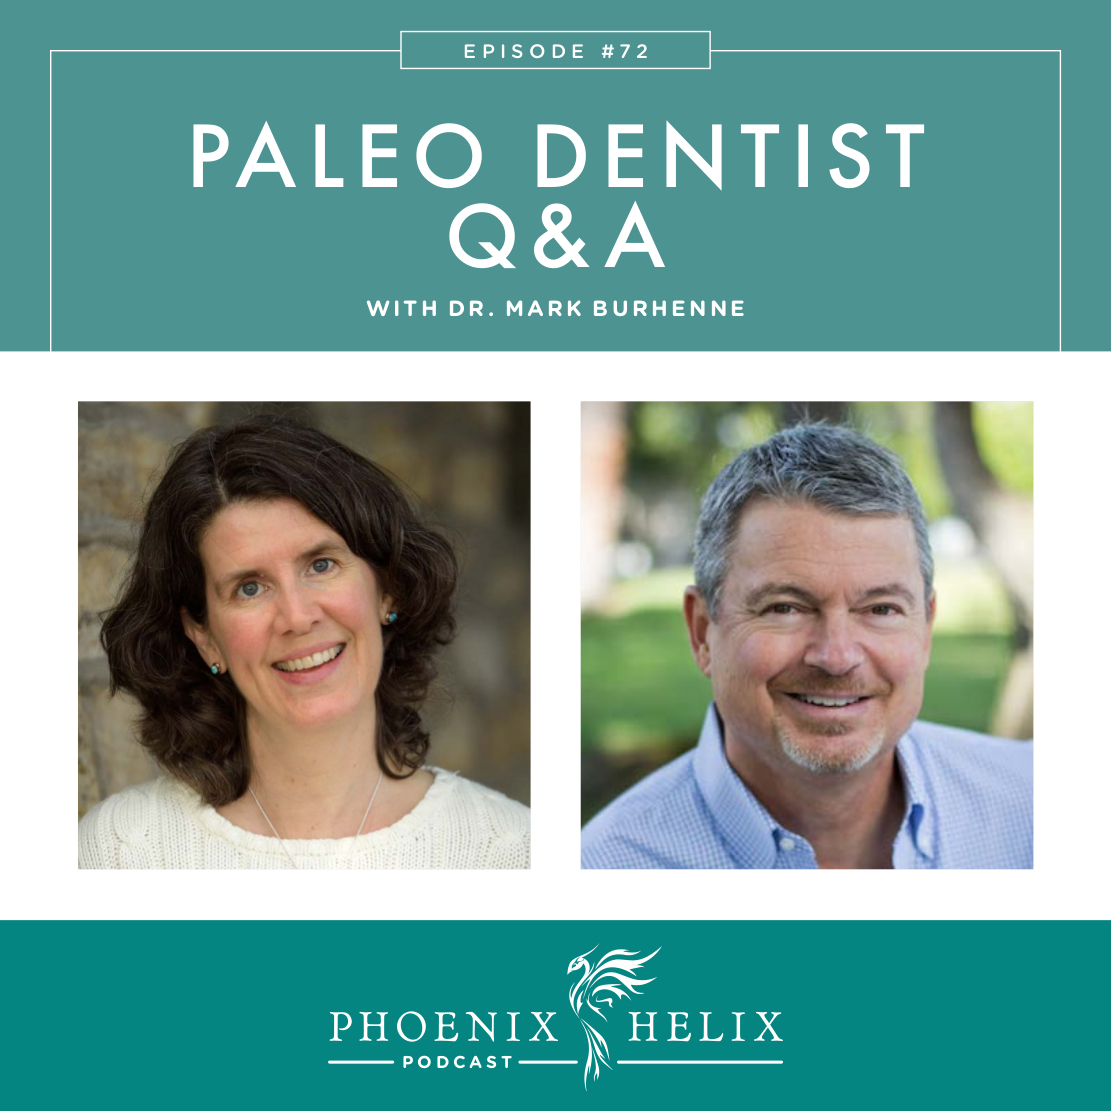 Paleo Dentist Q&A with Dr. Mark Burhenne | Phoenix Helix Podcast